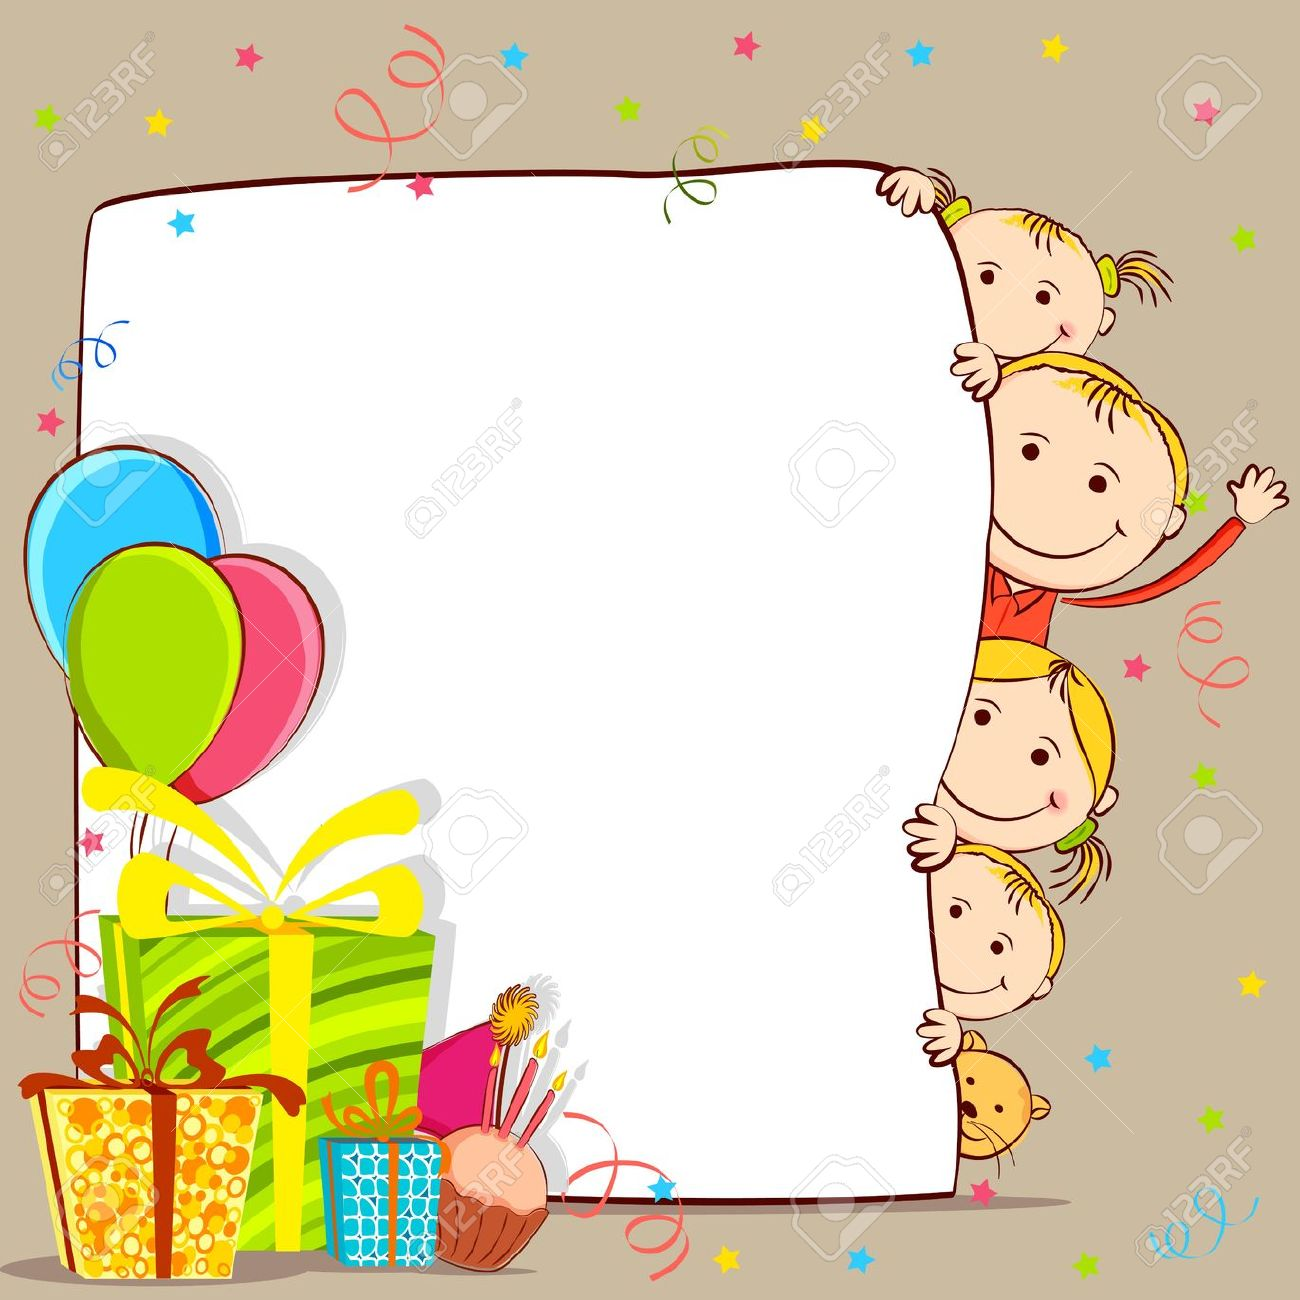 birthday greetings clipart ; birthday-greeting-clipart-43